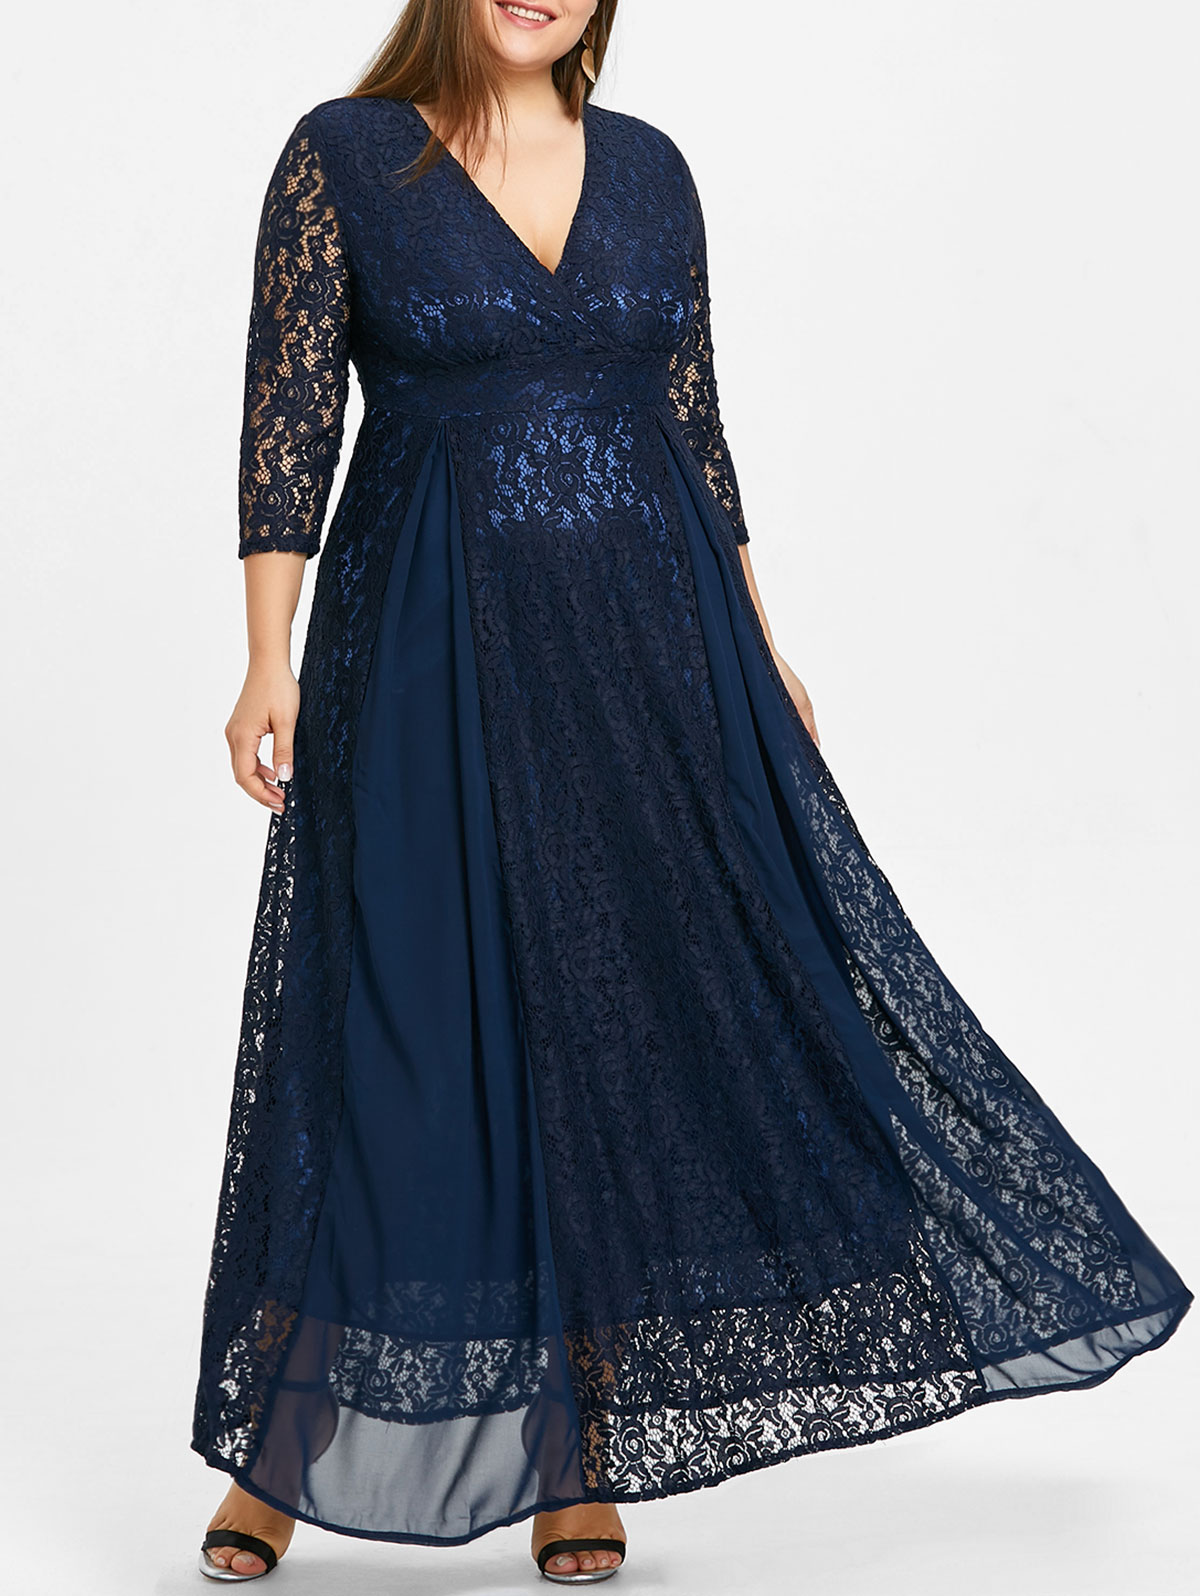 Robe Cache Coeur En Dentelle A Taille Empire Grande Taille Gearbest France